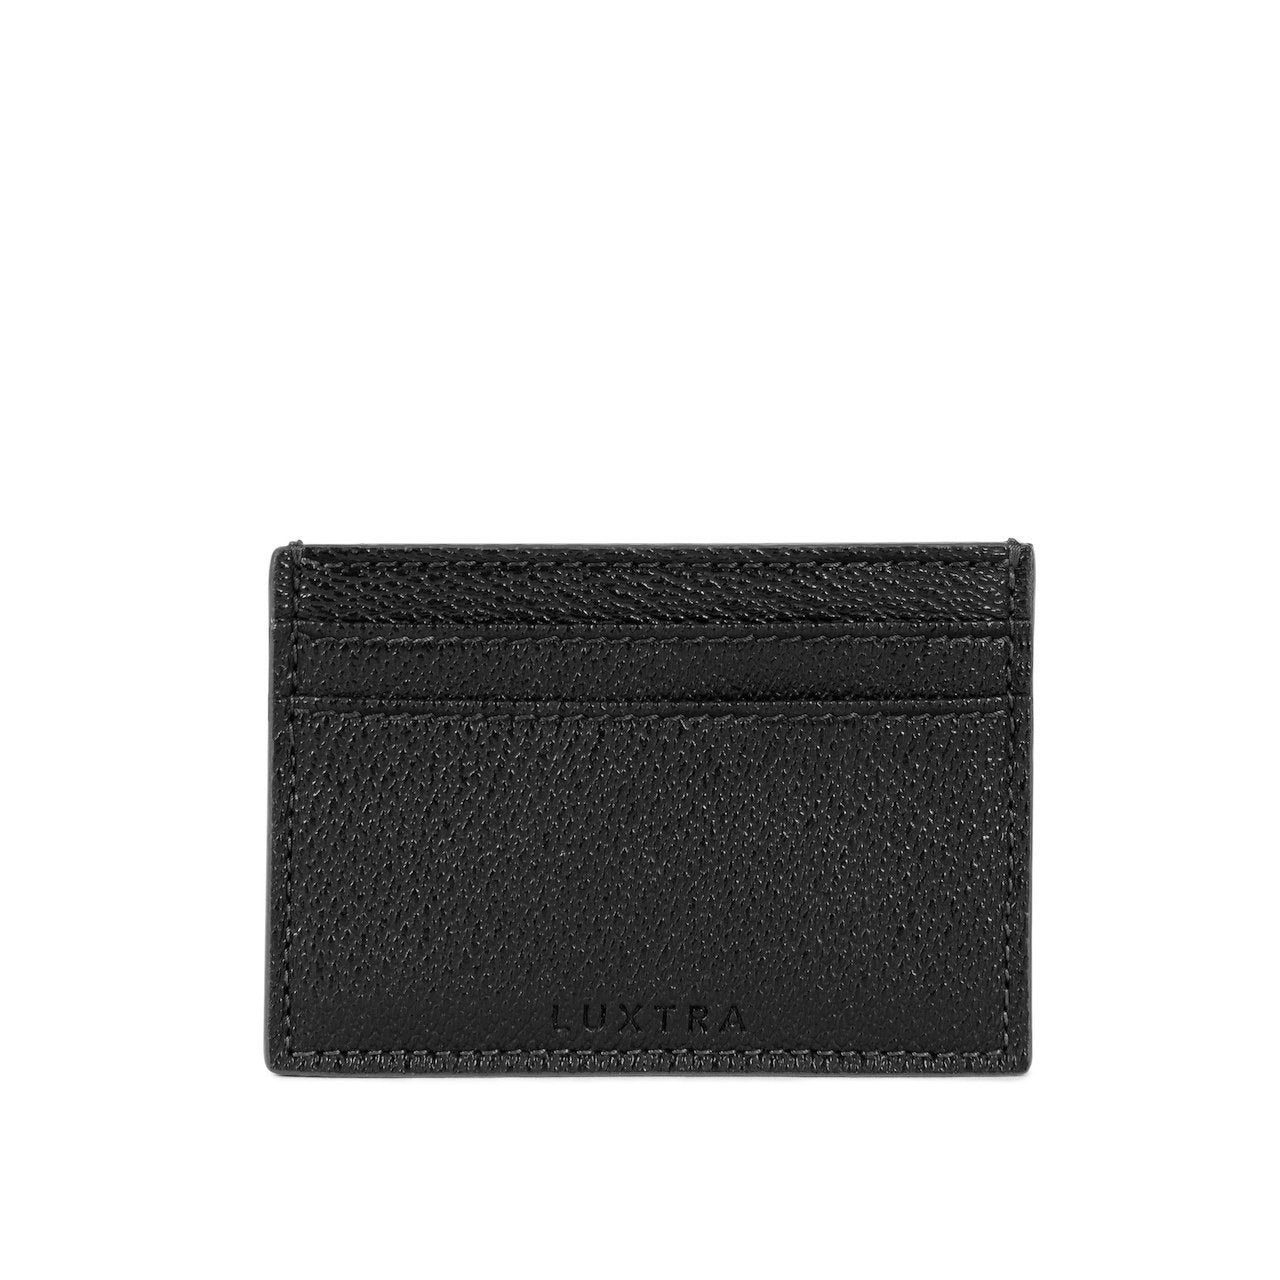 AppleSkin™ Card Holder - Black